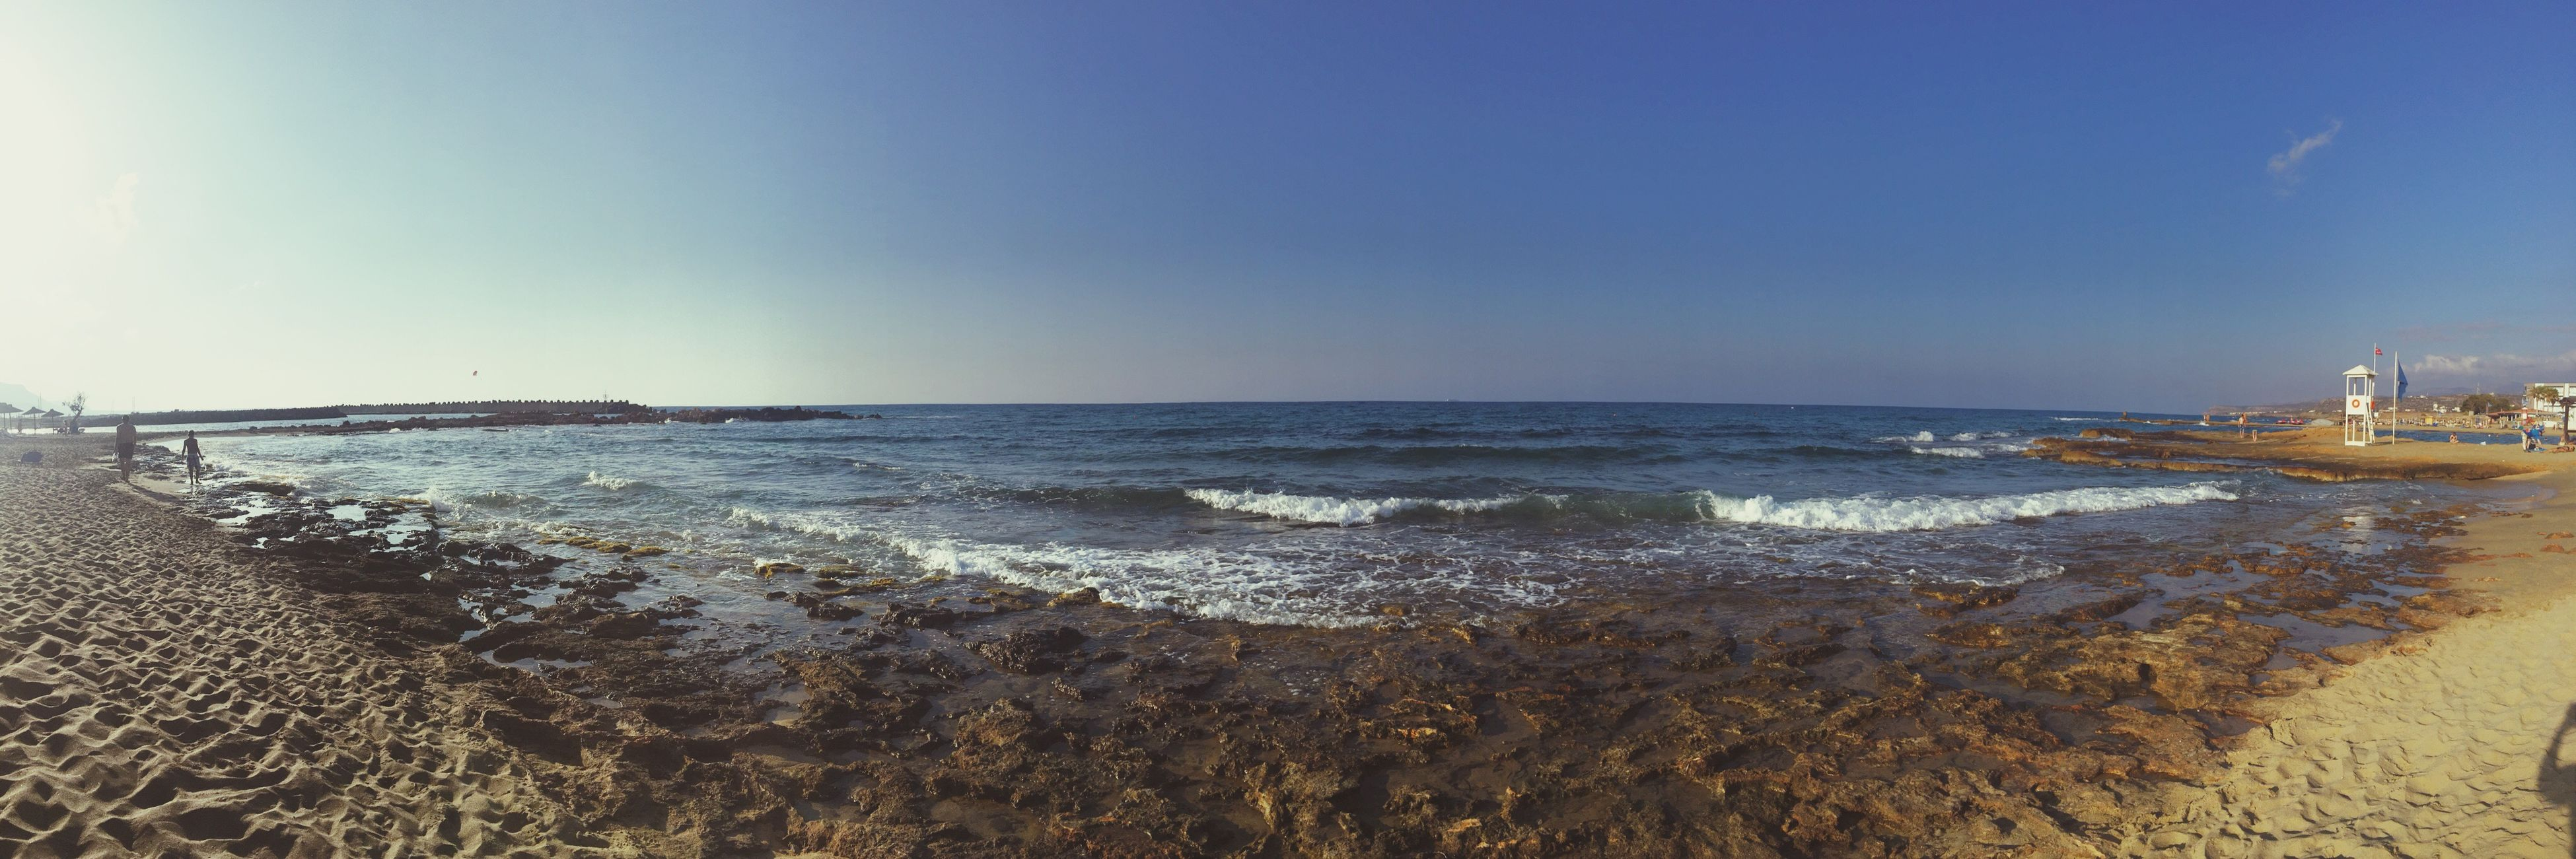 sea, horizon over water, water, panoramic, beach, clear sky, scenics, tranquil scene, shore, copy space, blue, tranquility, beauty in nature, nature, calm, seascape, wave, coastline, day, majestic, sky, remote, non-urban scene, surface level, outdoors, ocean, no people, rocky, non urban scene, solitude